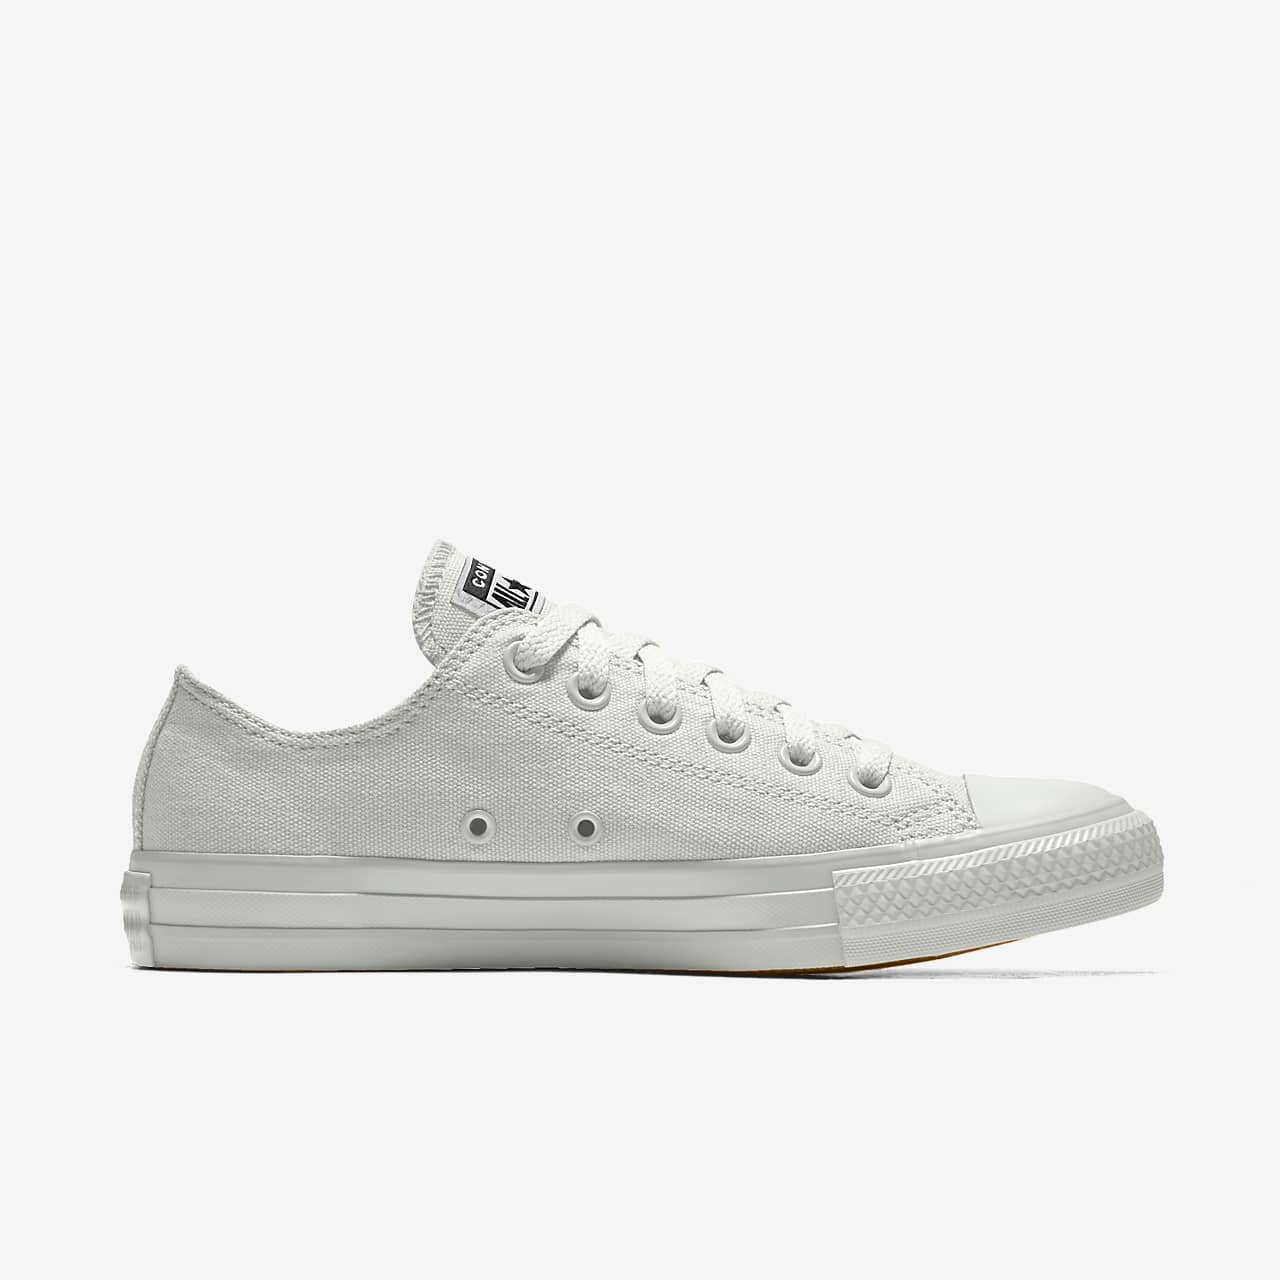 tarta Apuesta Espinas  Limited Time Deals·New Deals Everyday converse es de nike, OFF 74%,Buy!